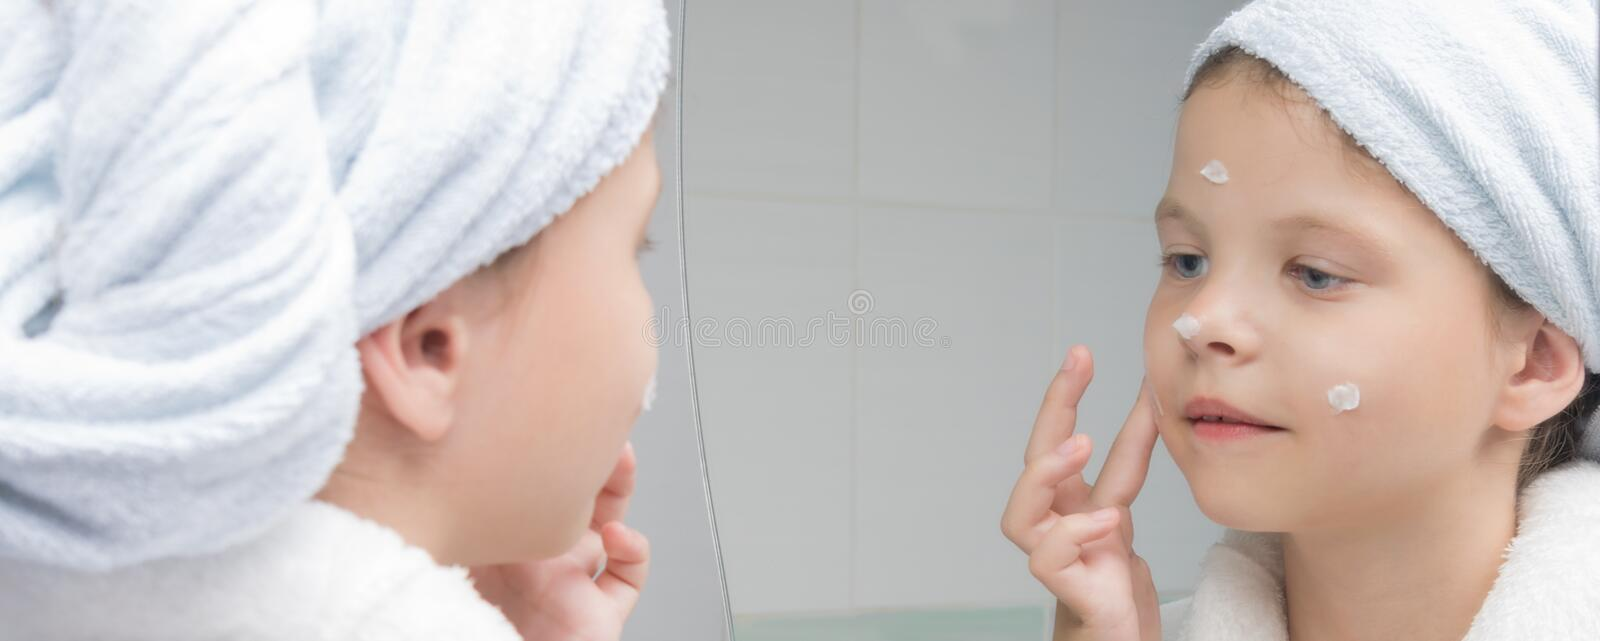 Girl in a white coat with a towel on her head moisturizes face with a cream in front of a mirror. Girl in a white coat with a towel on her head moisturizes face royalty free stock images